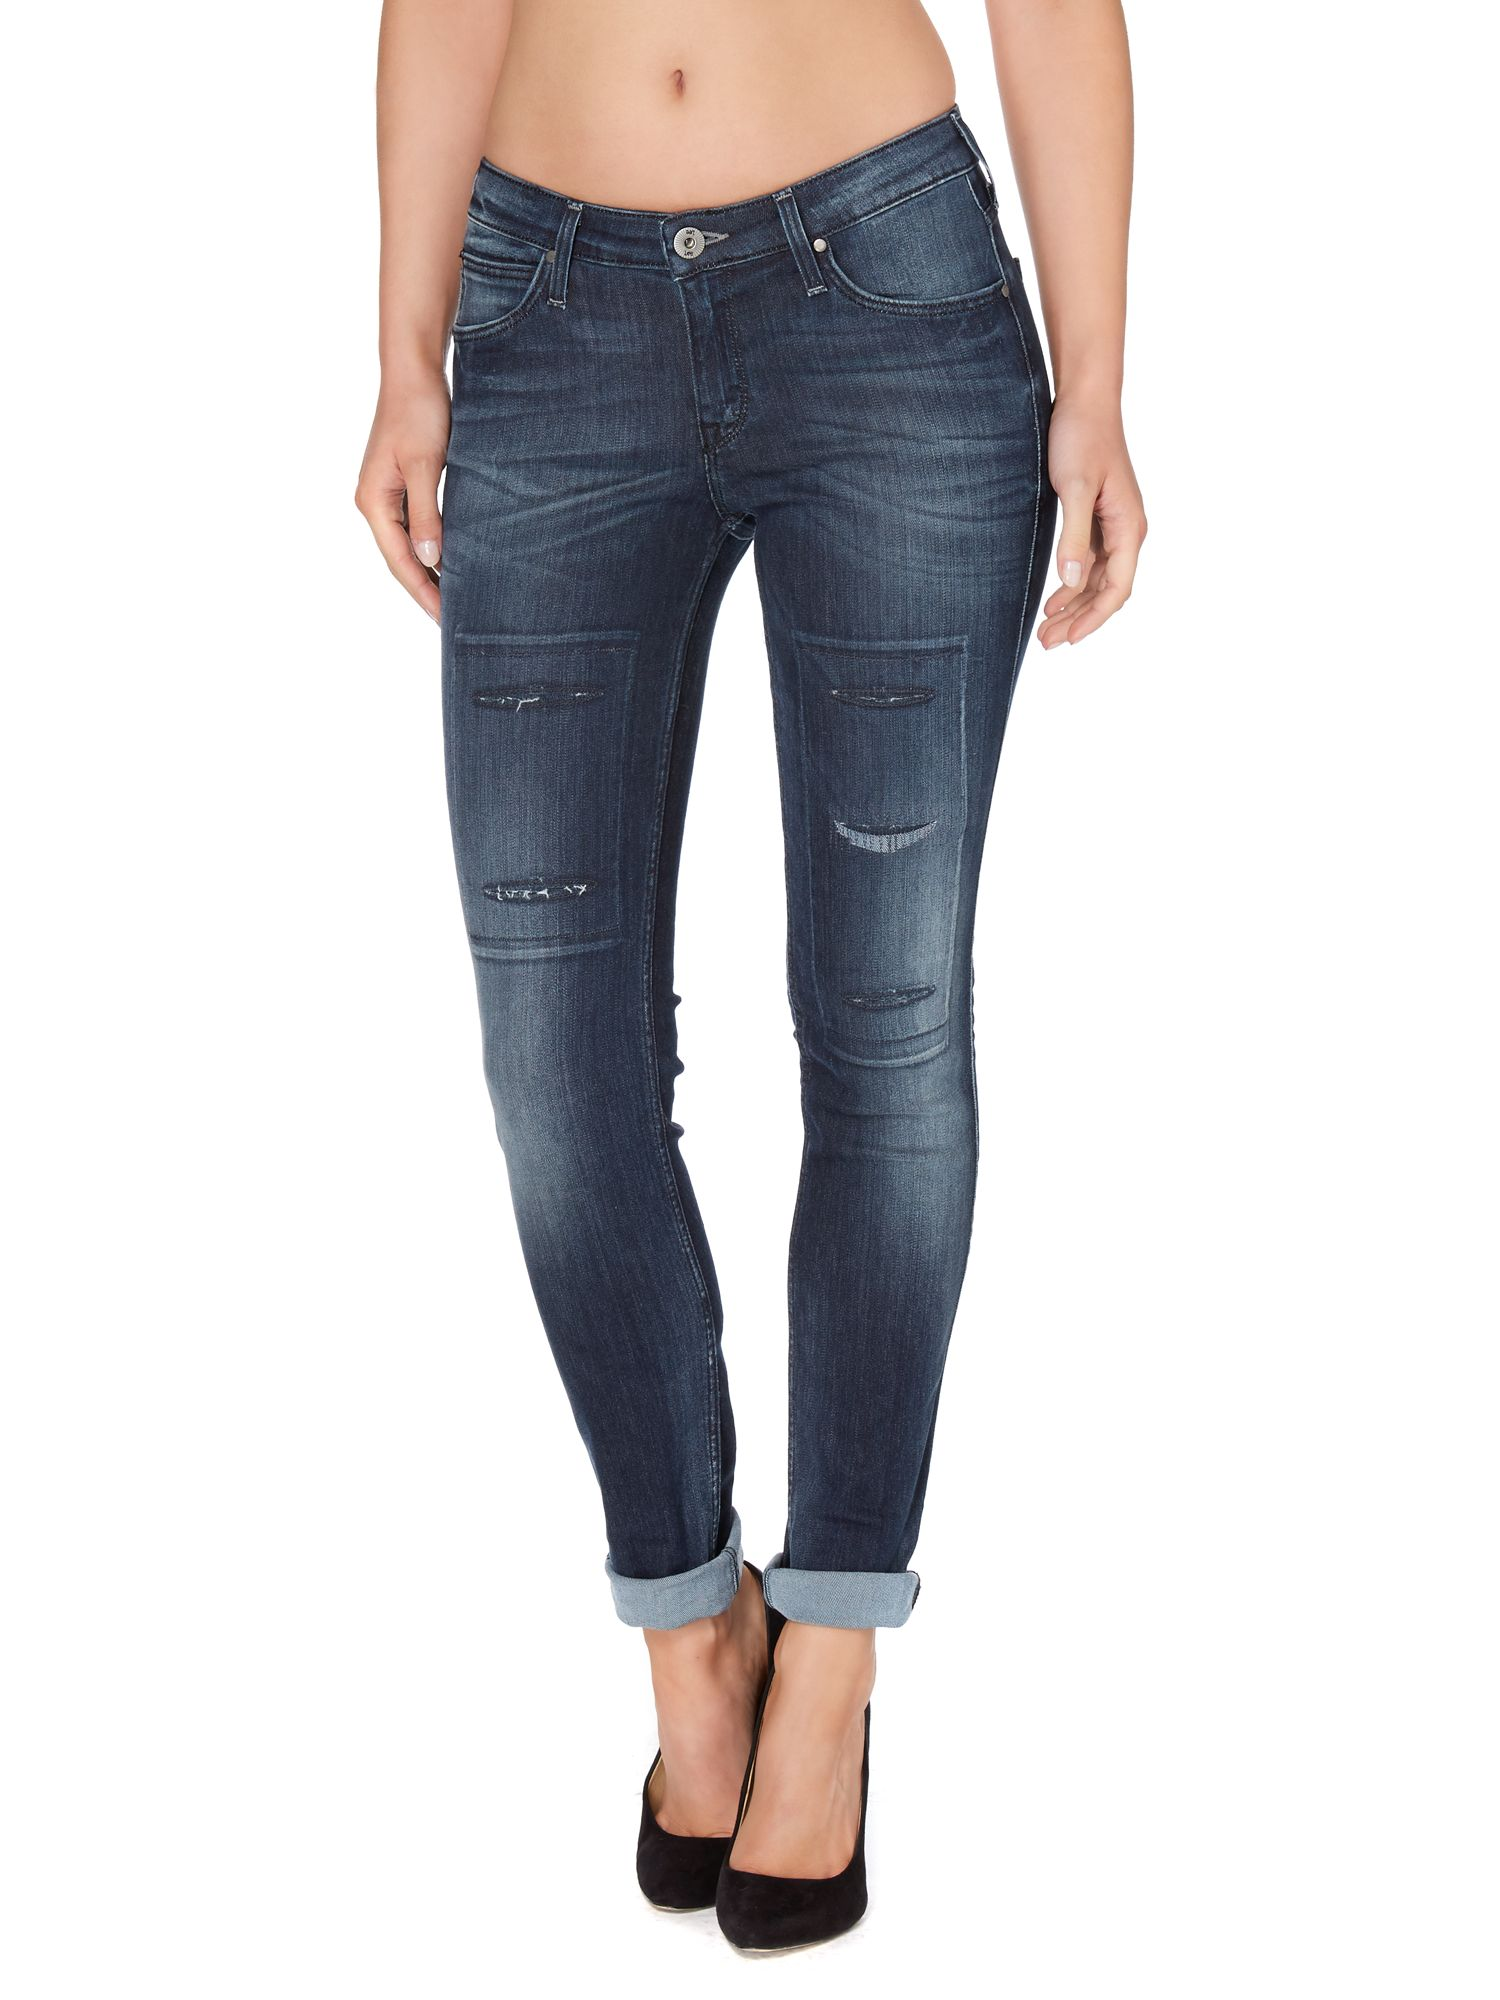 Scarlett skinny jean in sliced beauty